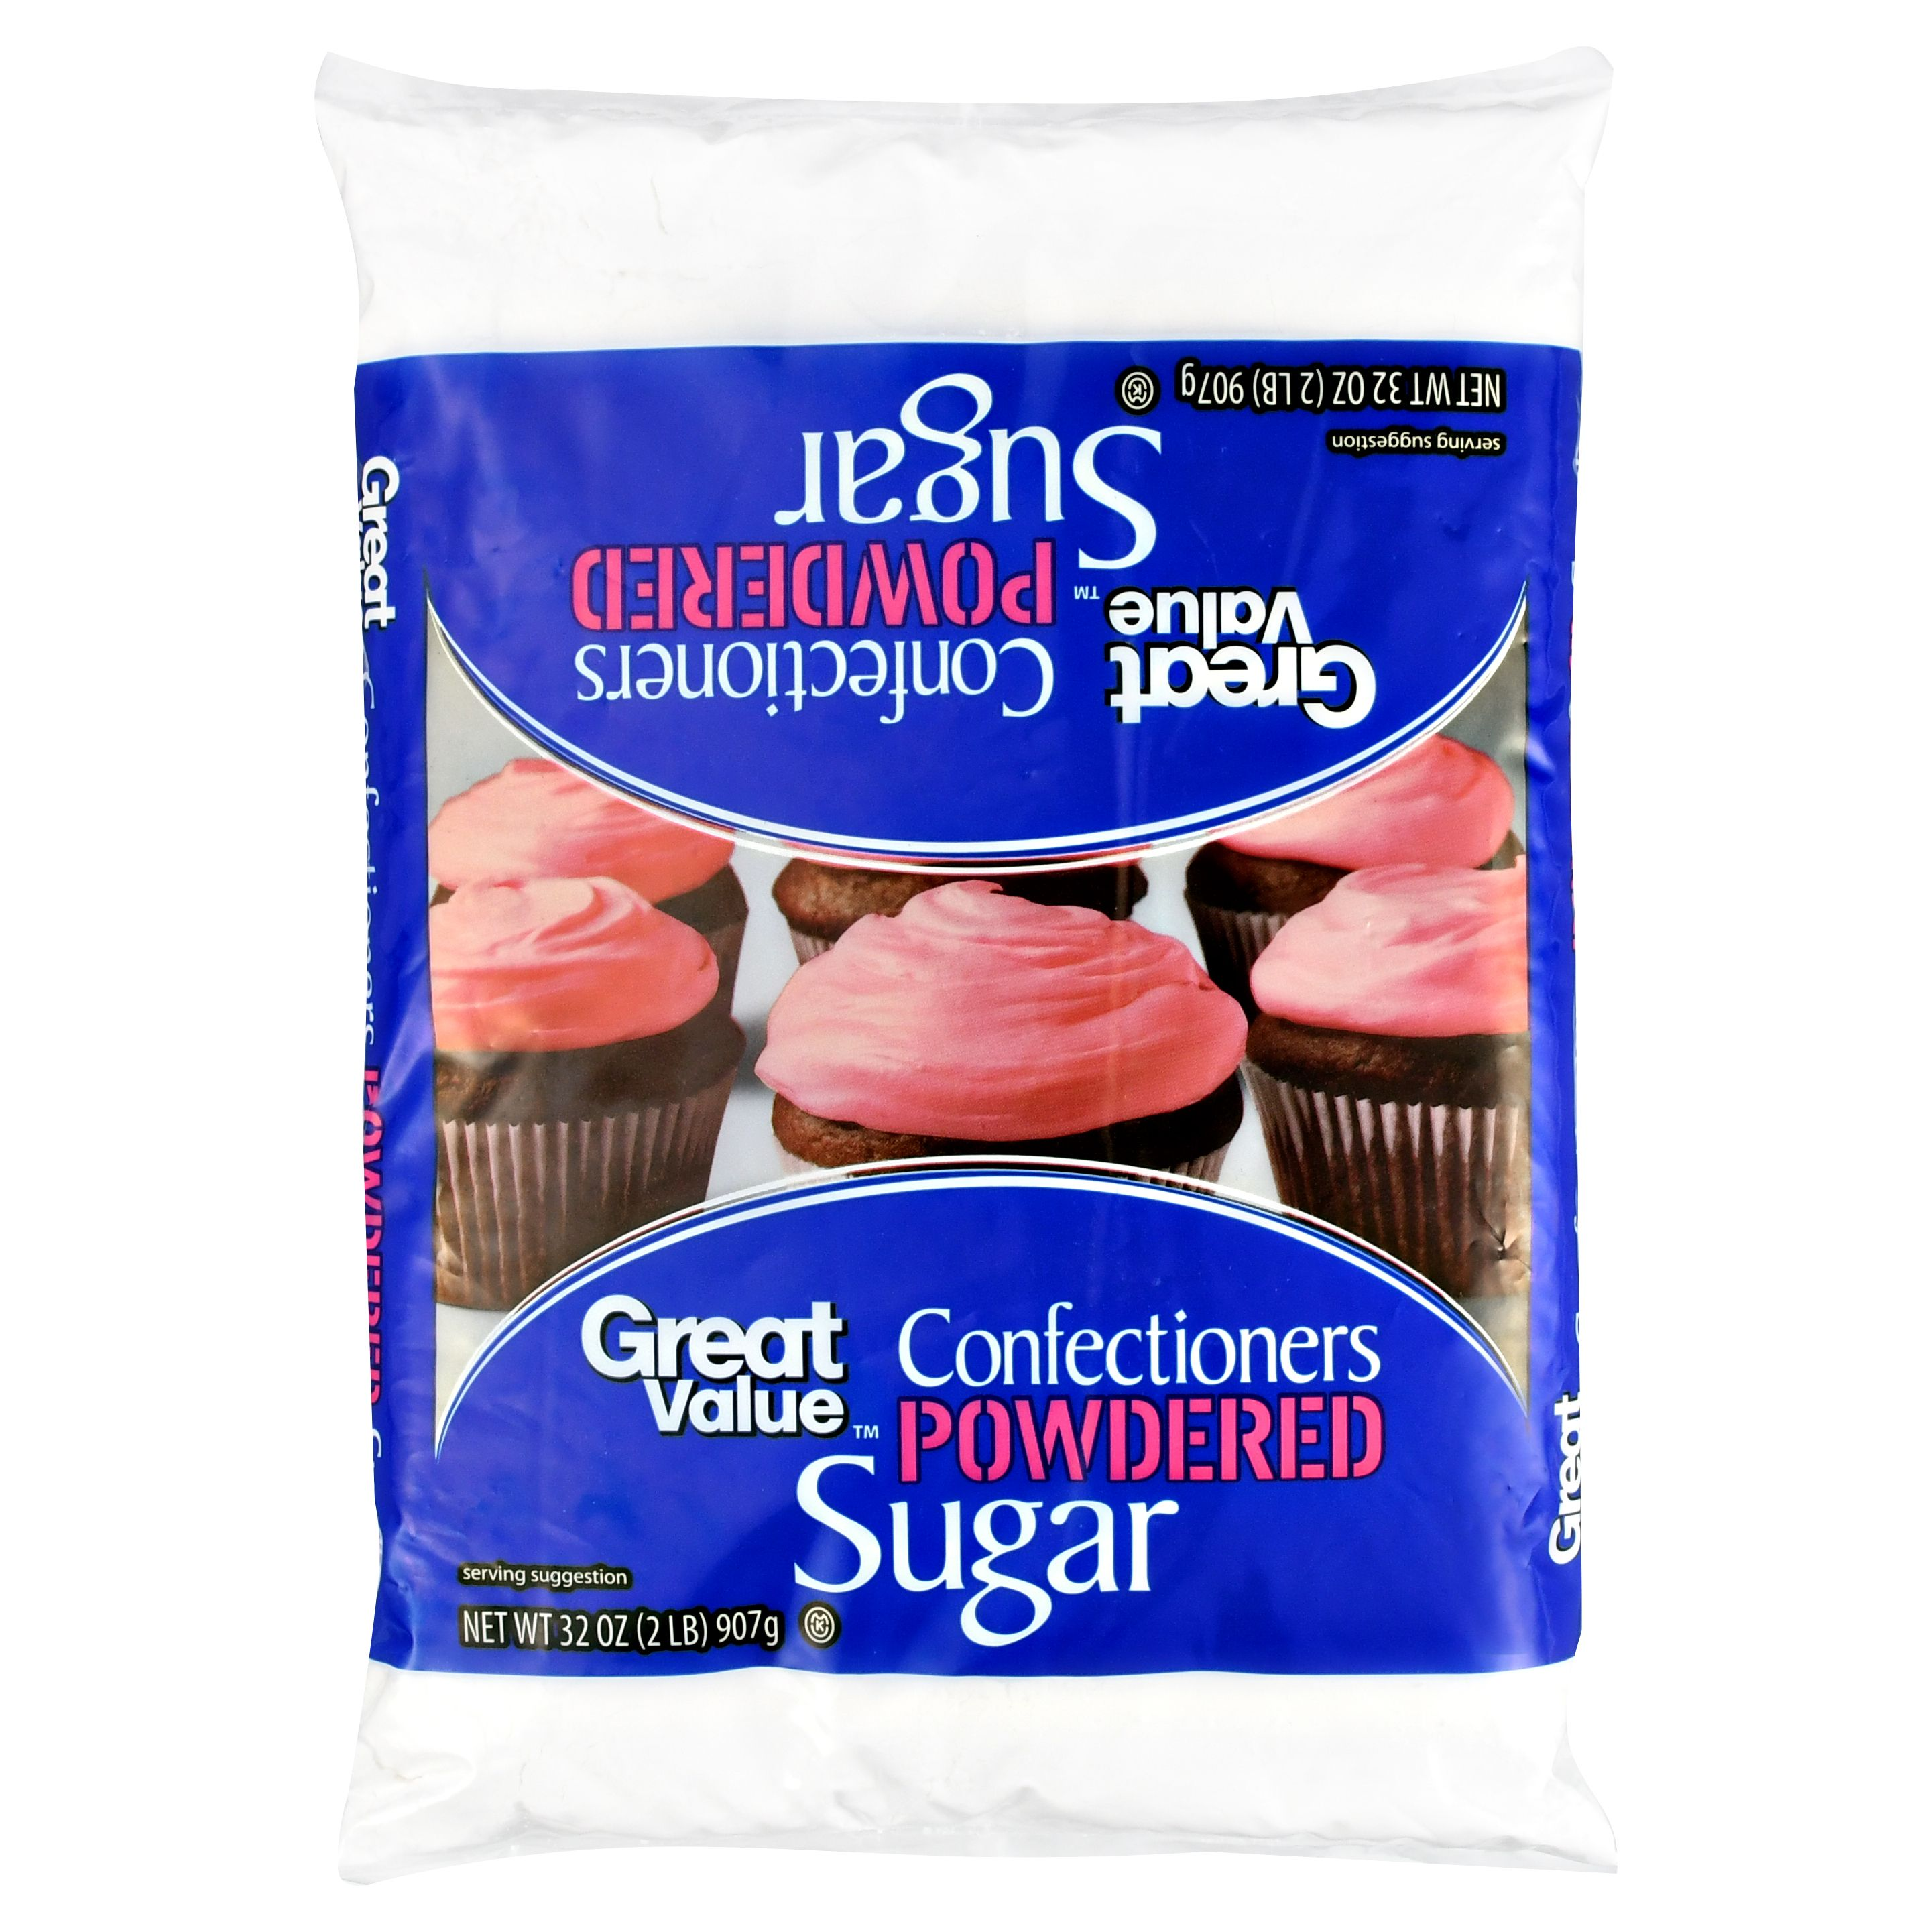 Great Value Confectioners Powdered Sugar, 32 oz by Wal-Mart Stores, Inc.